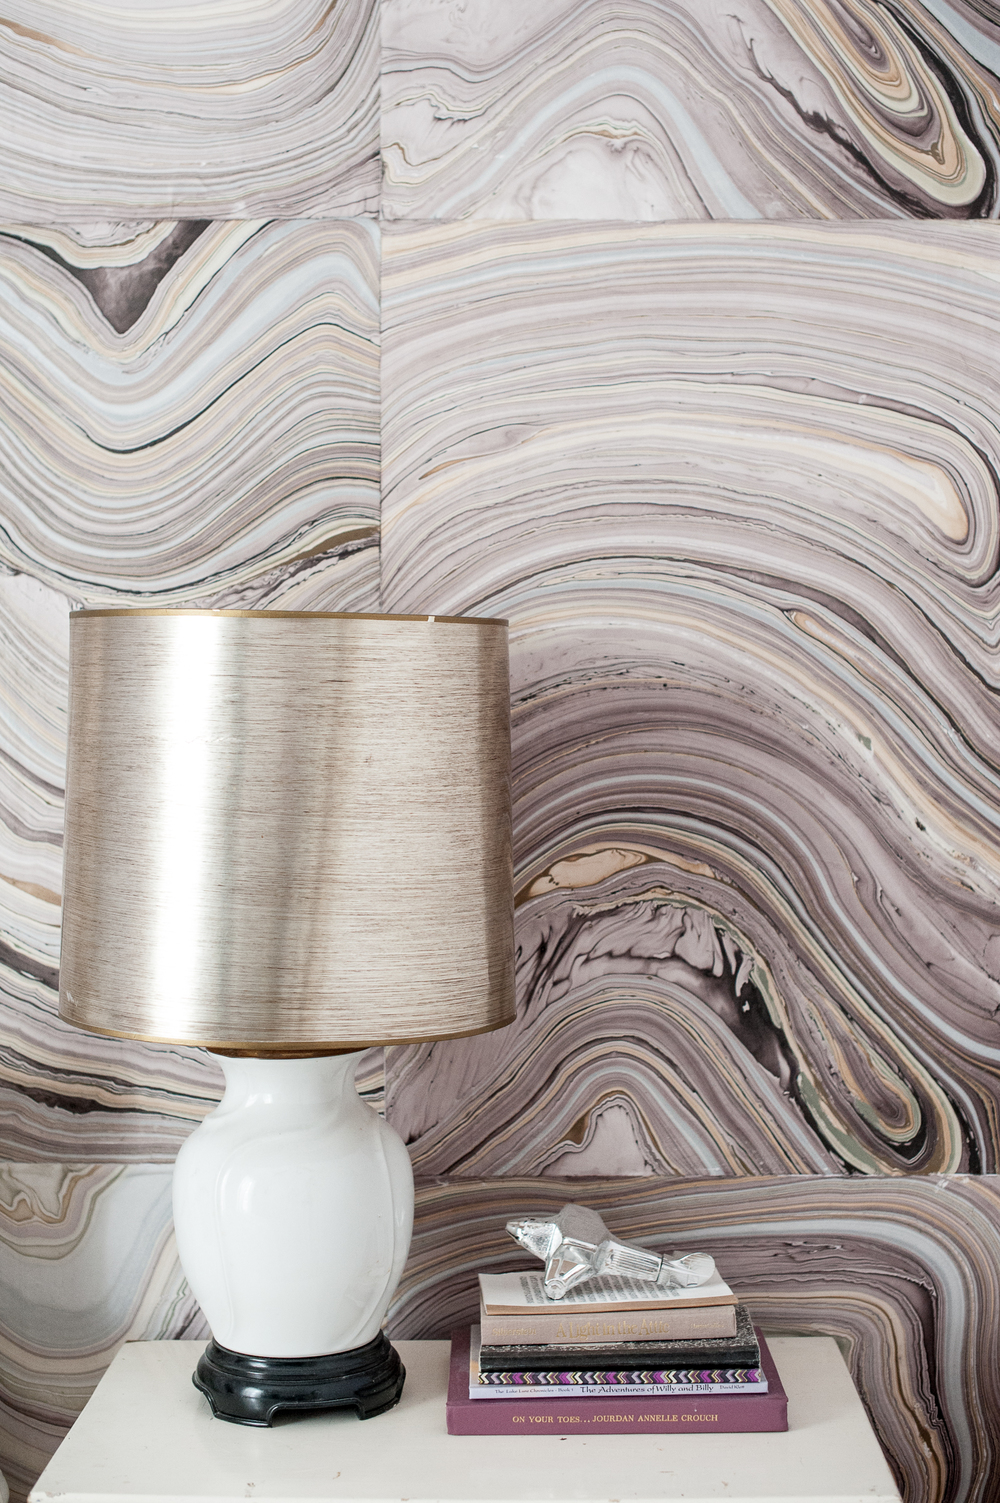 Jourdan Fairchild is a crafty lady. See here: She decoupaged her bedroom walls with marbled paper.